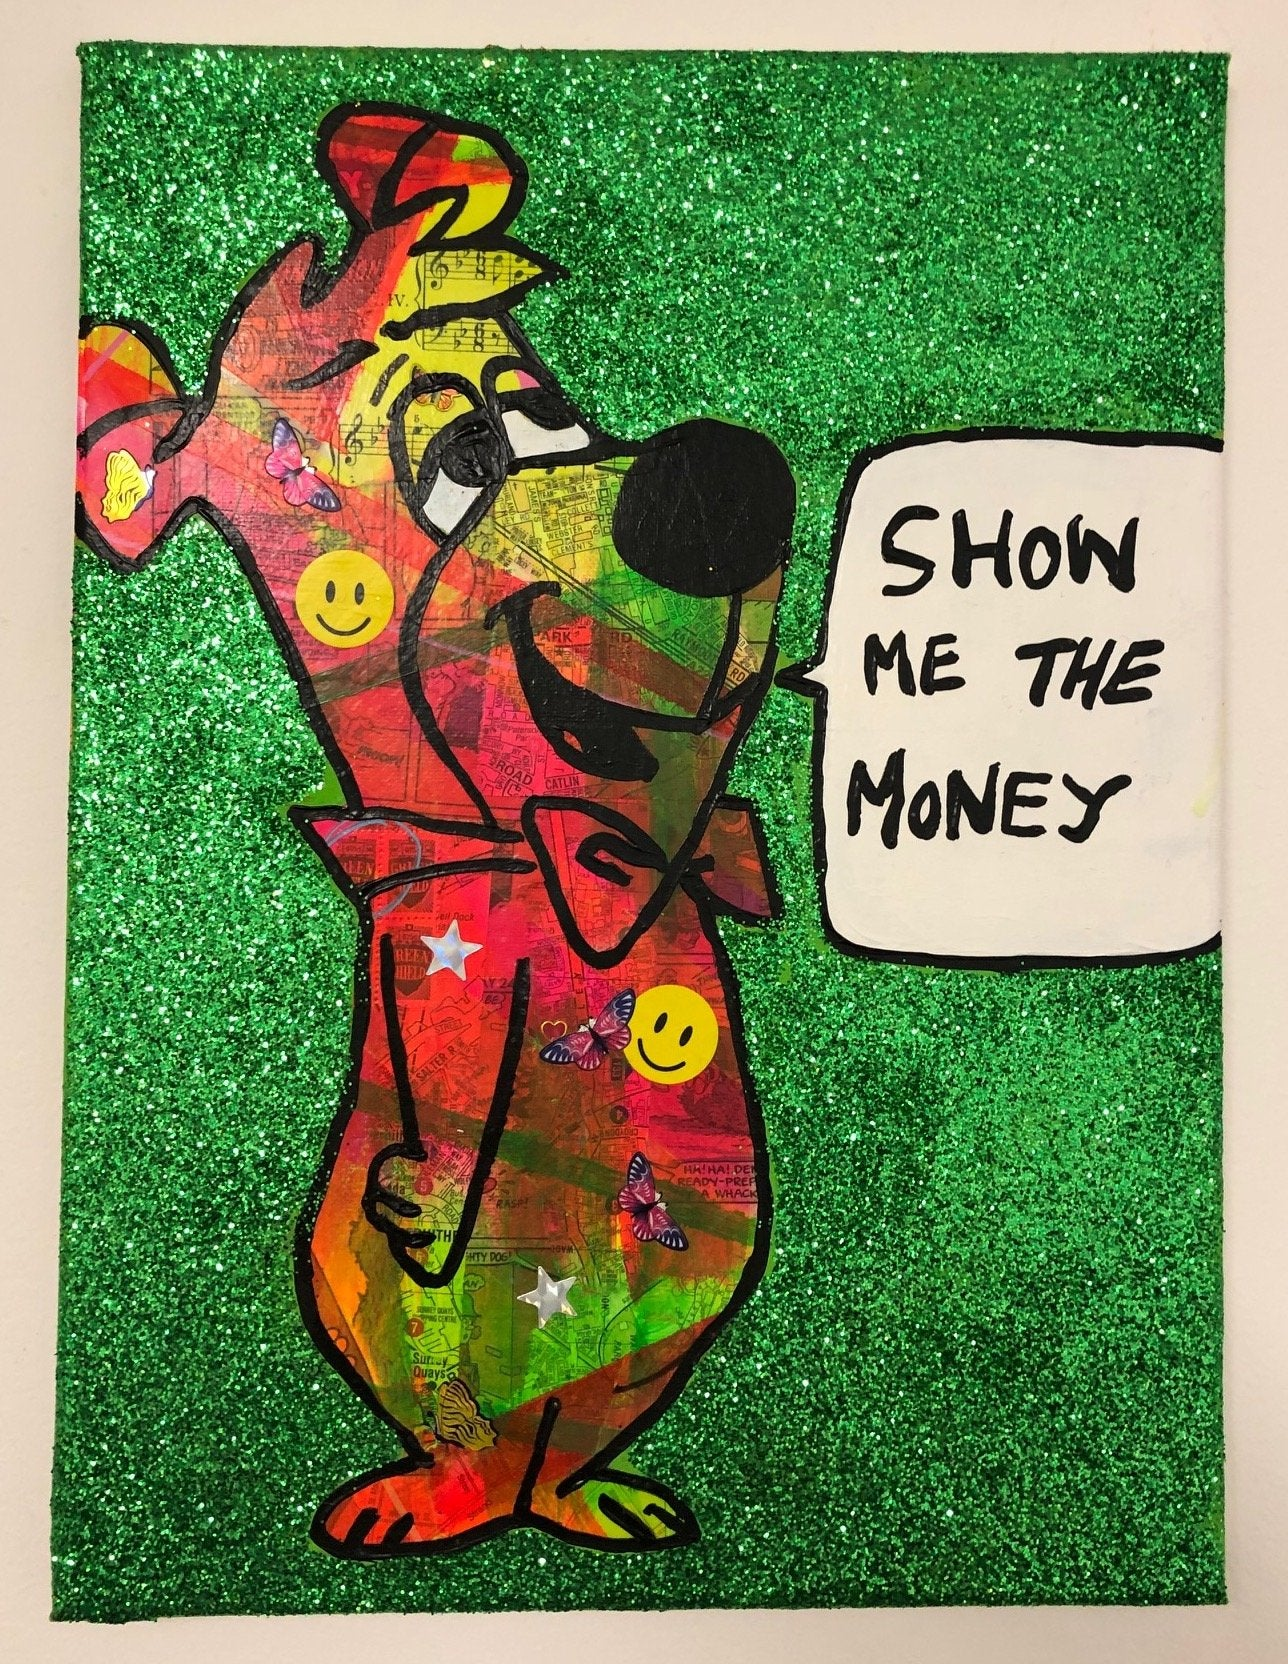 Show me the money by Barrie J Davies 2019, mixed media on canvas, unframed, 30cm x 40cm. Barrie J Davies is an Artist - Pop Art and Street art inspired Artist based in Brighton England UK - Pop Art Paintings, Street Art Prints & Editions available.